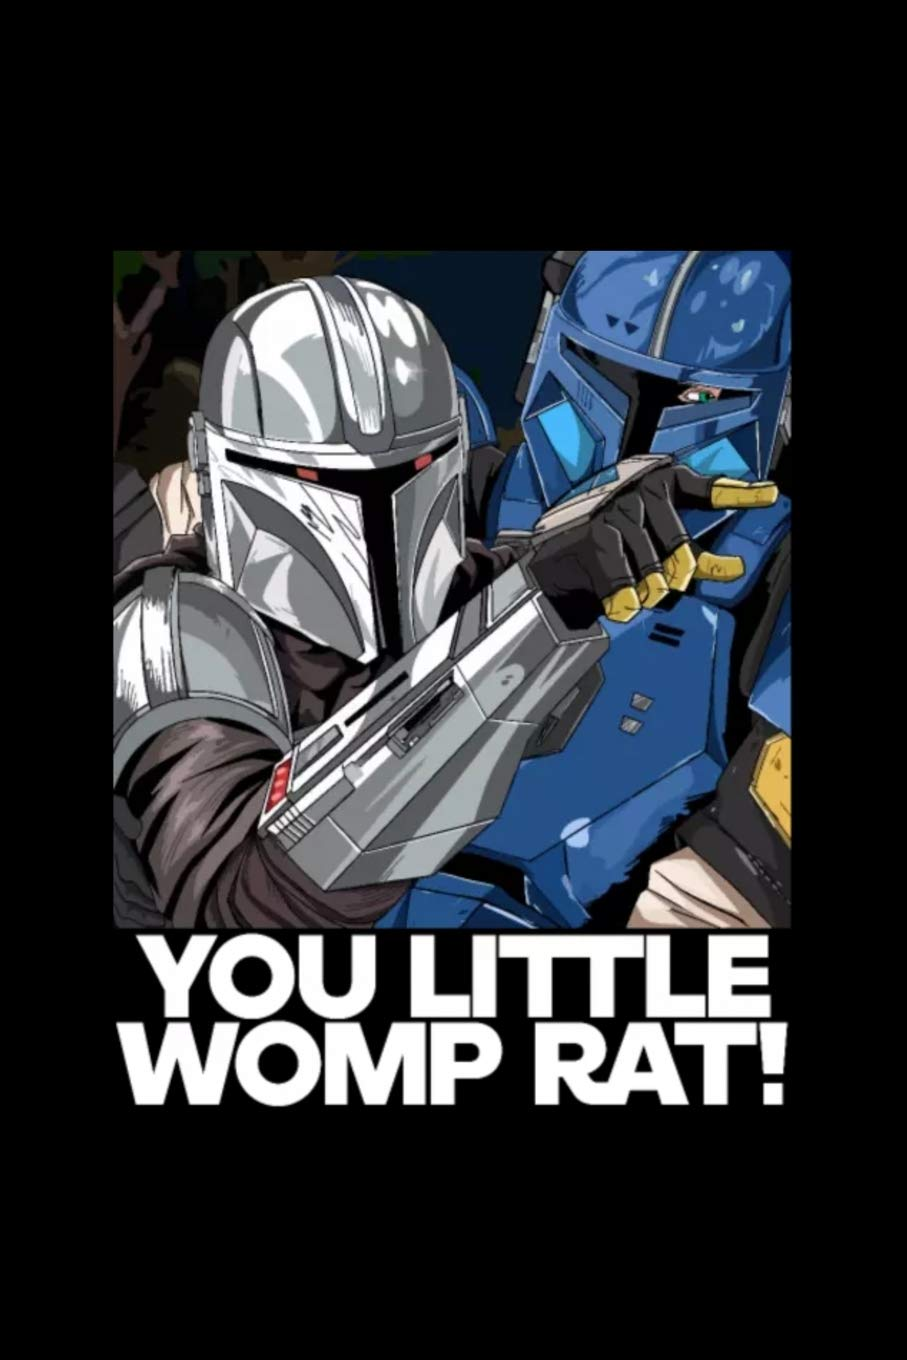 Amazon Com You Litle Womp Rat Blank Lined Notebook Journal For Work School Office 6x9 110 Page 9781650661636 Design Dryer Books We are compiling a list of all codex entries with guides on how to get carnivorous rodents native to tatooine, womp rats are a menace to any permanent settlement. amazon com